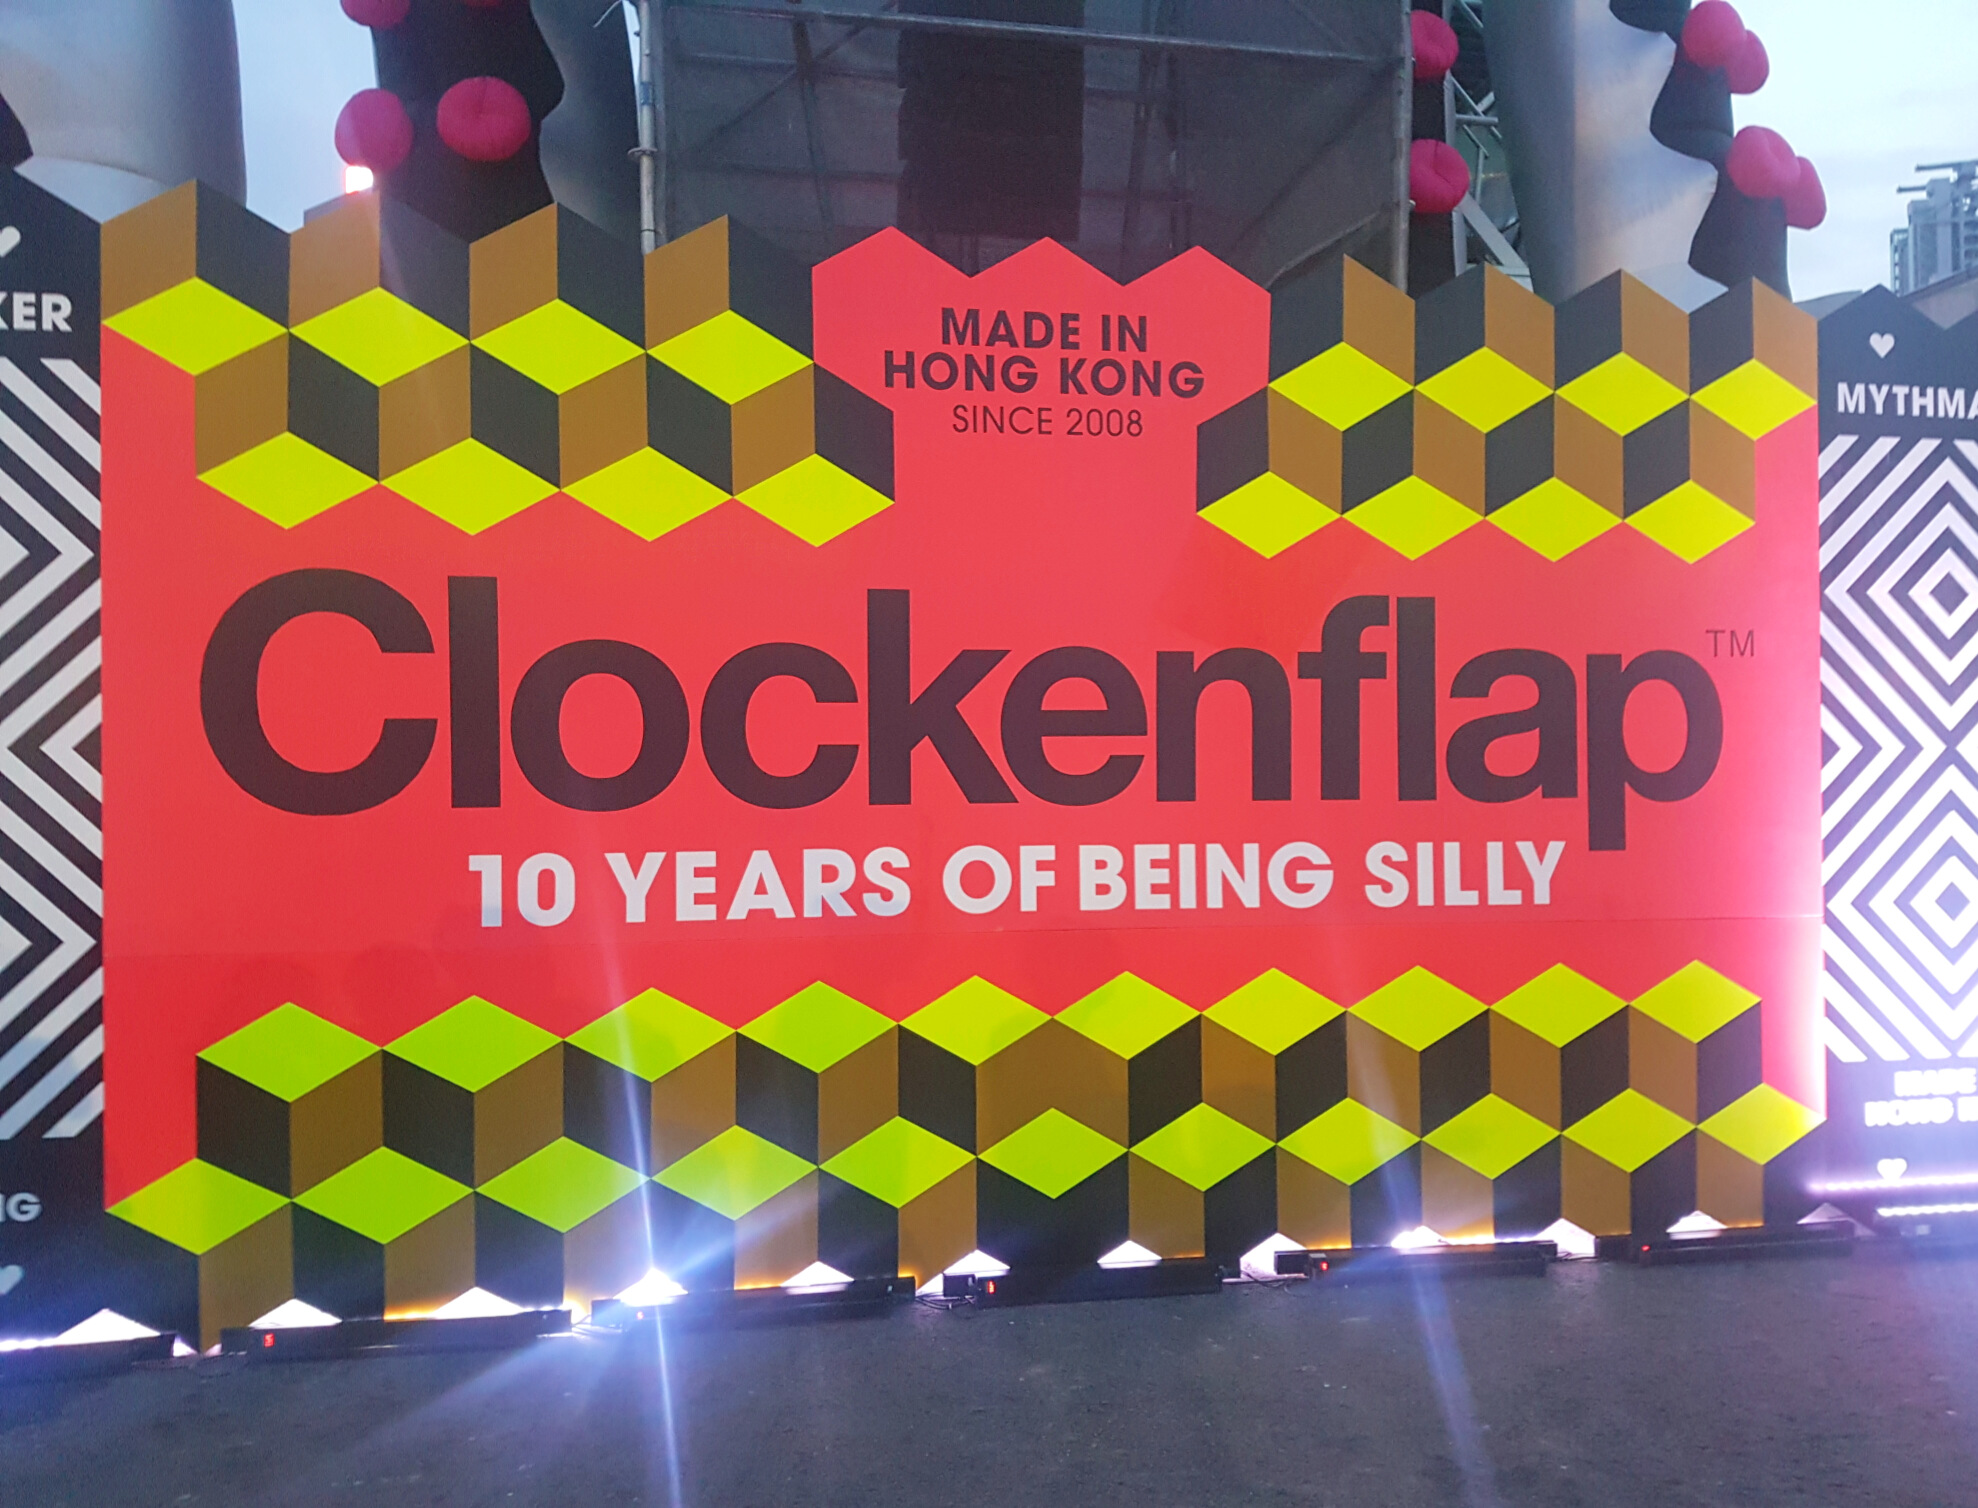 This year was 10th birthday of Clockenflap!